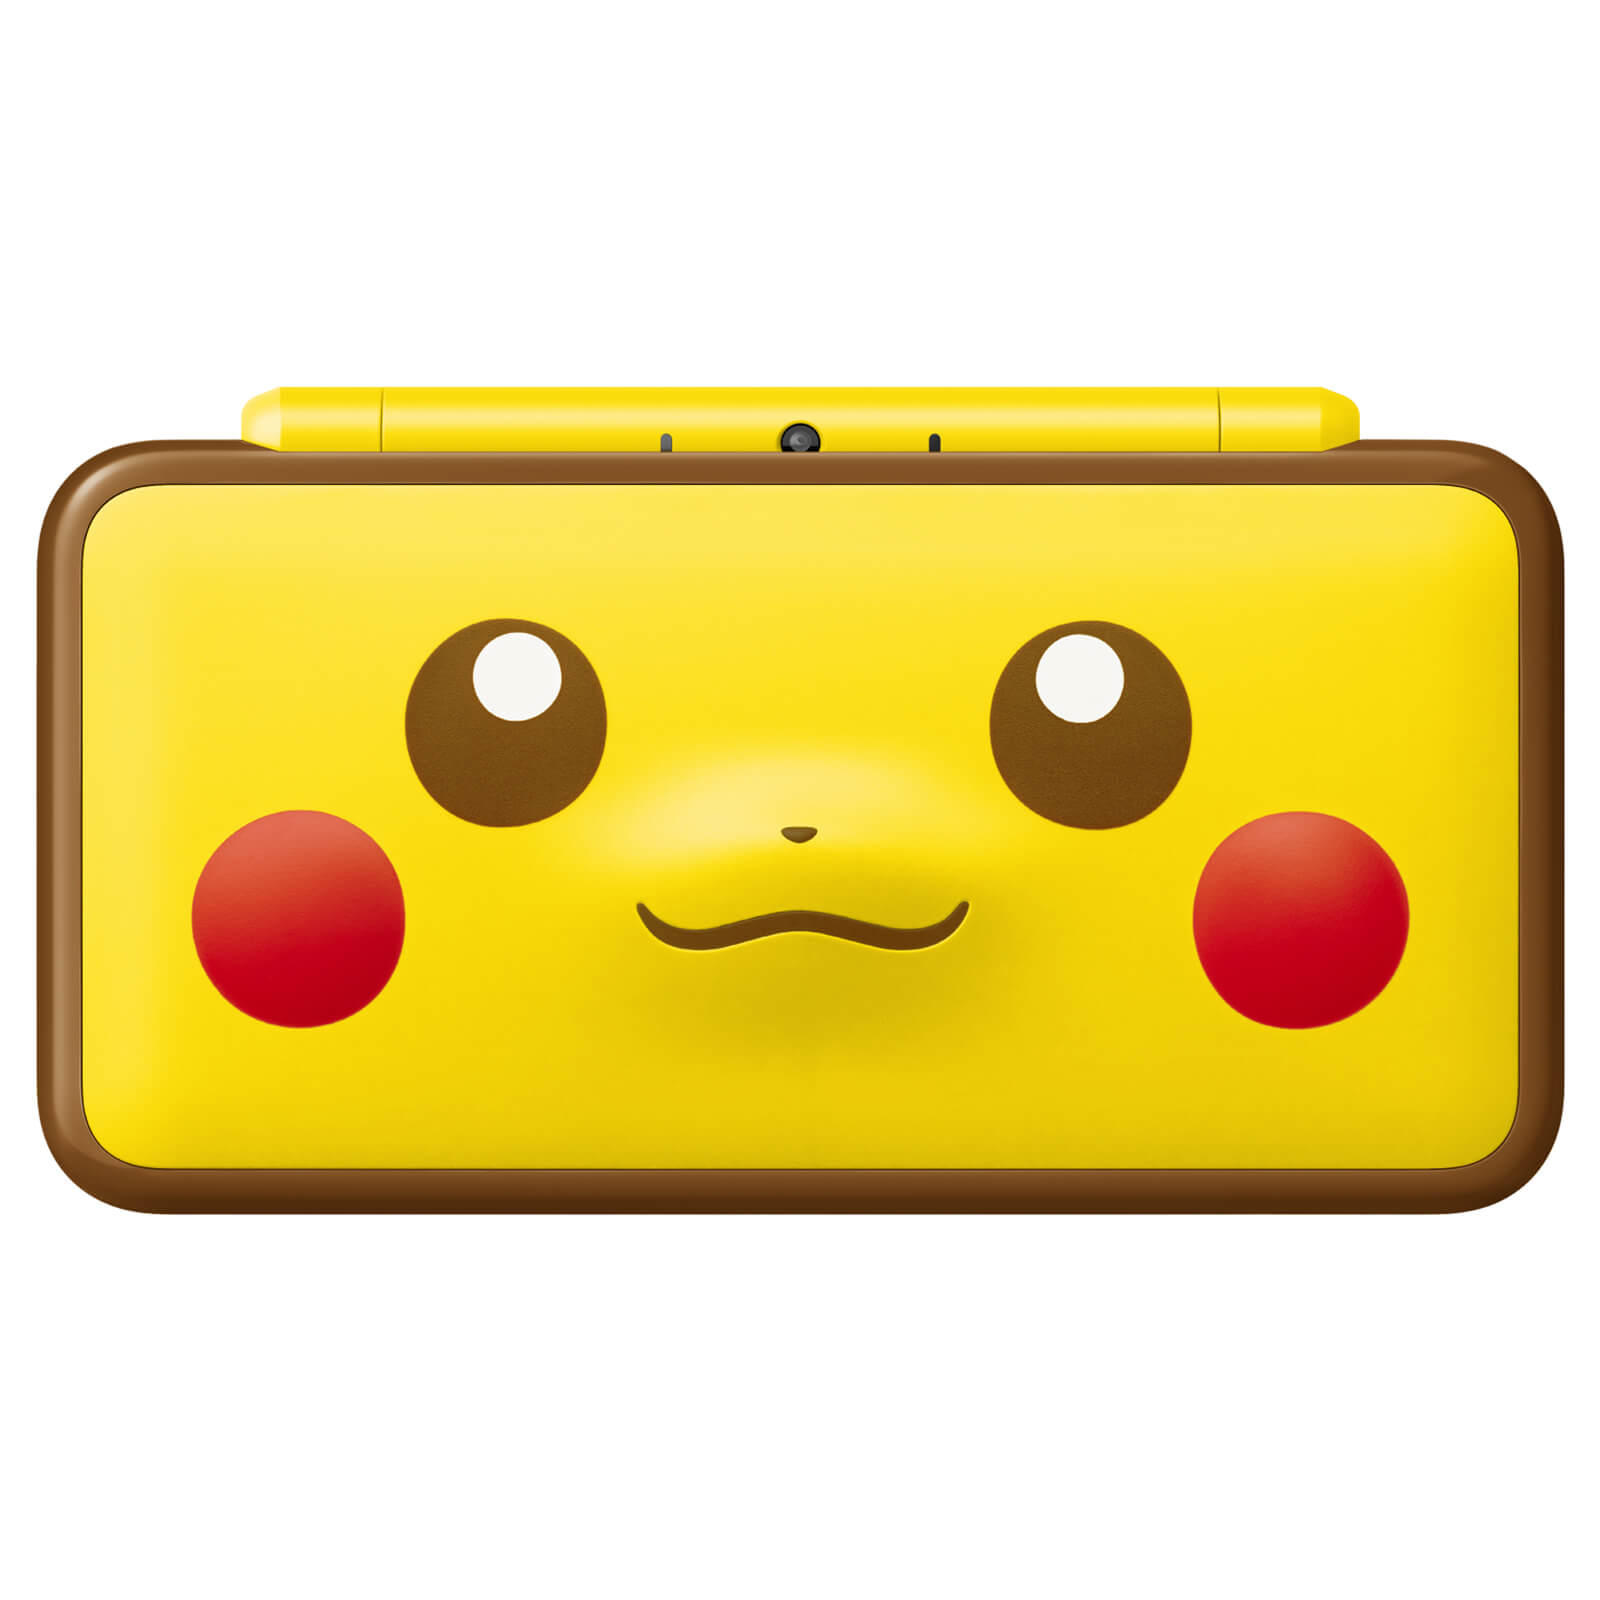 New Nintendo 2DS XL Pikachu Edition Closed Image 2